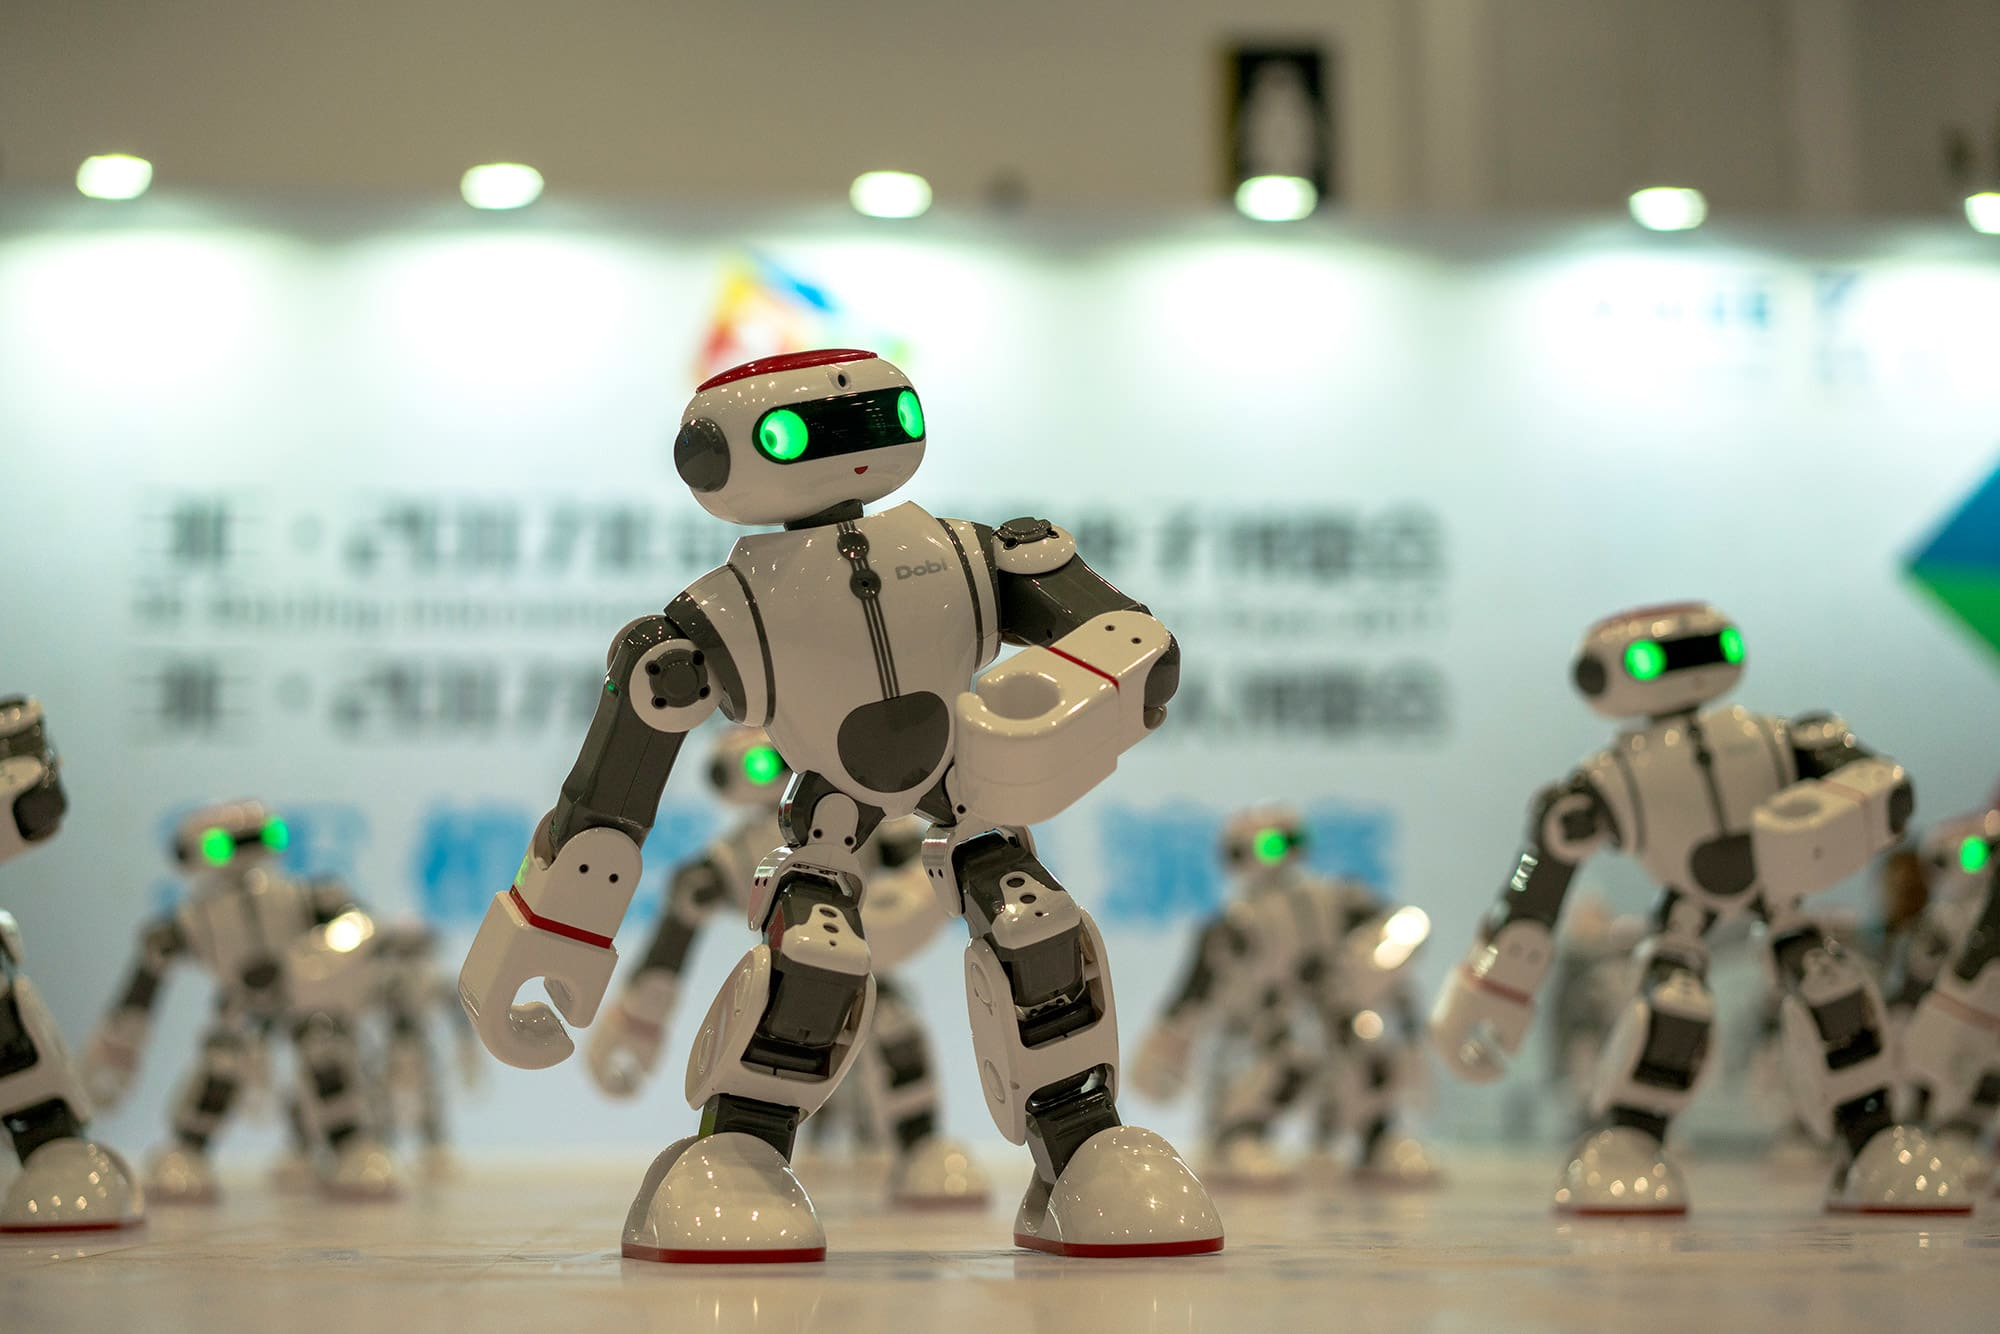 China wants to be a 150 billion world leader in ai by 2030 biocorpaavc Gallery